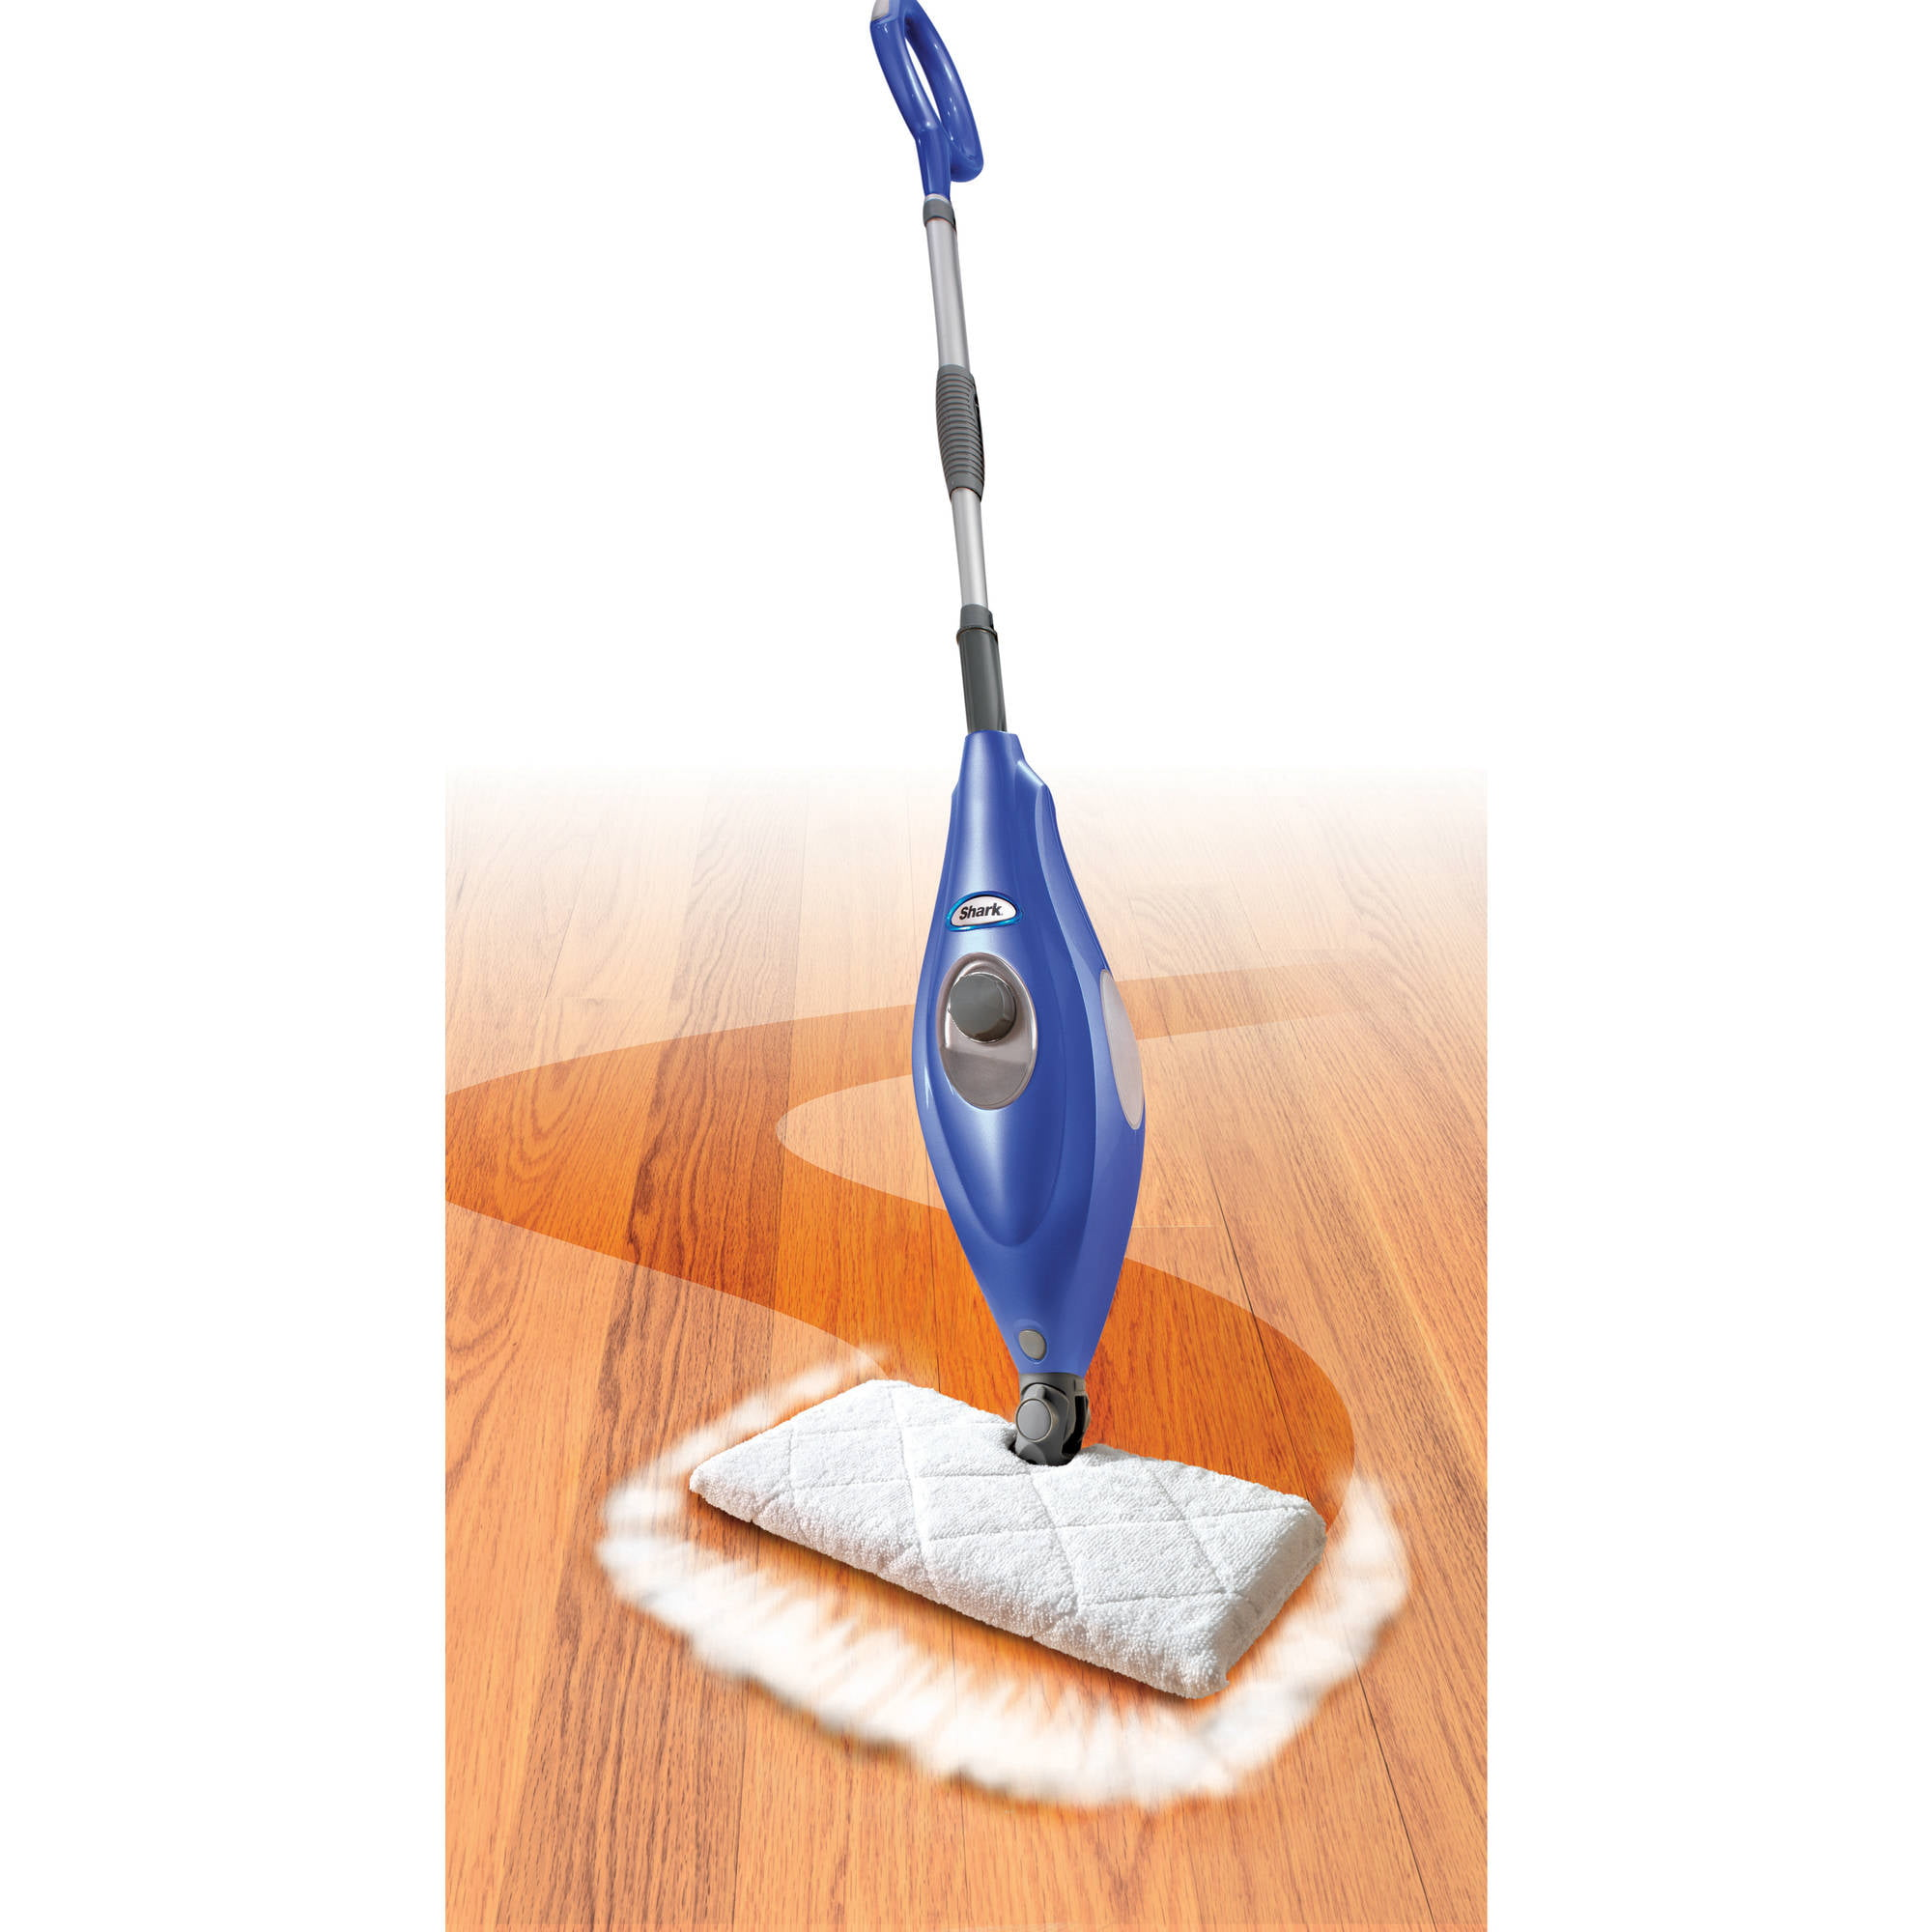 Hoover TwinTank Handheld Steam Cleaner, WH20100 - Walmart.com